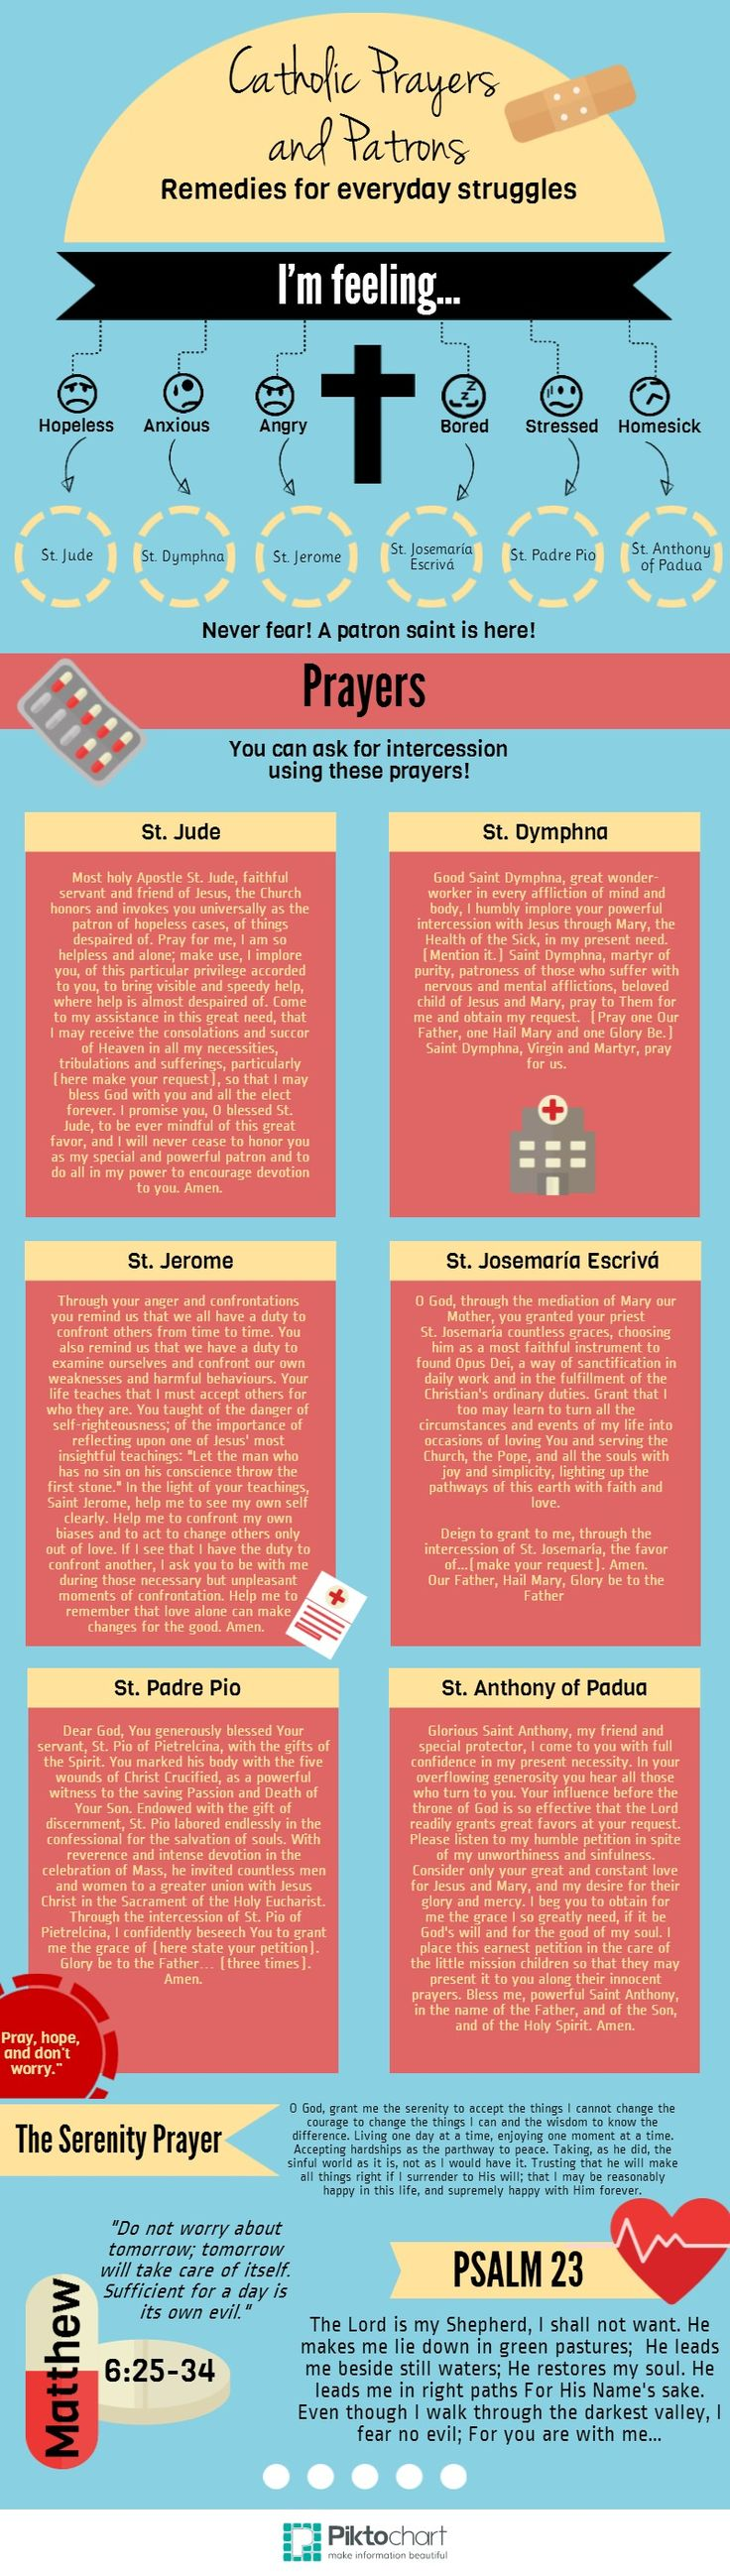 Anxious? Worried? Check out this great infographic which guides you to prayers and patrons to help with life's struggles! #saint #catholic